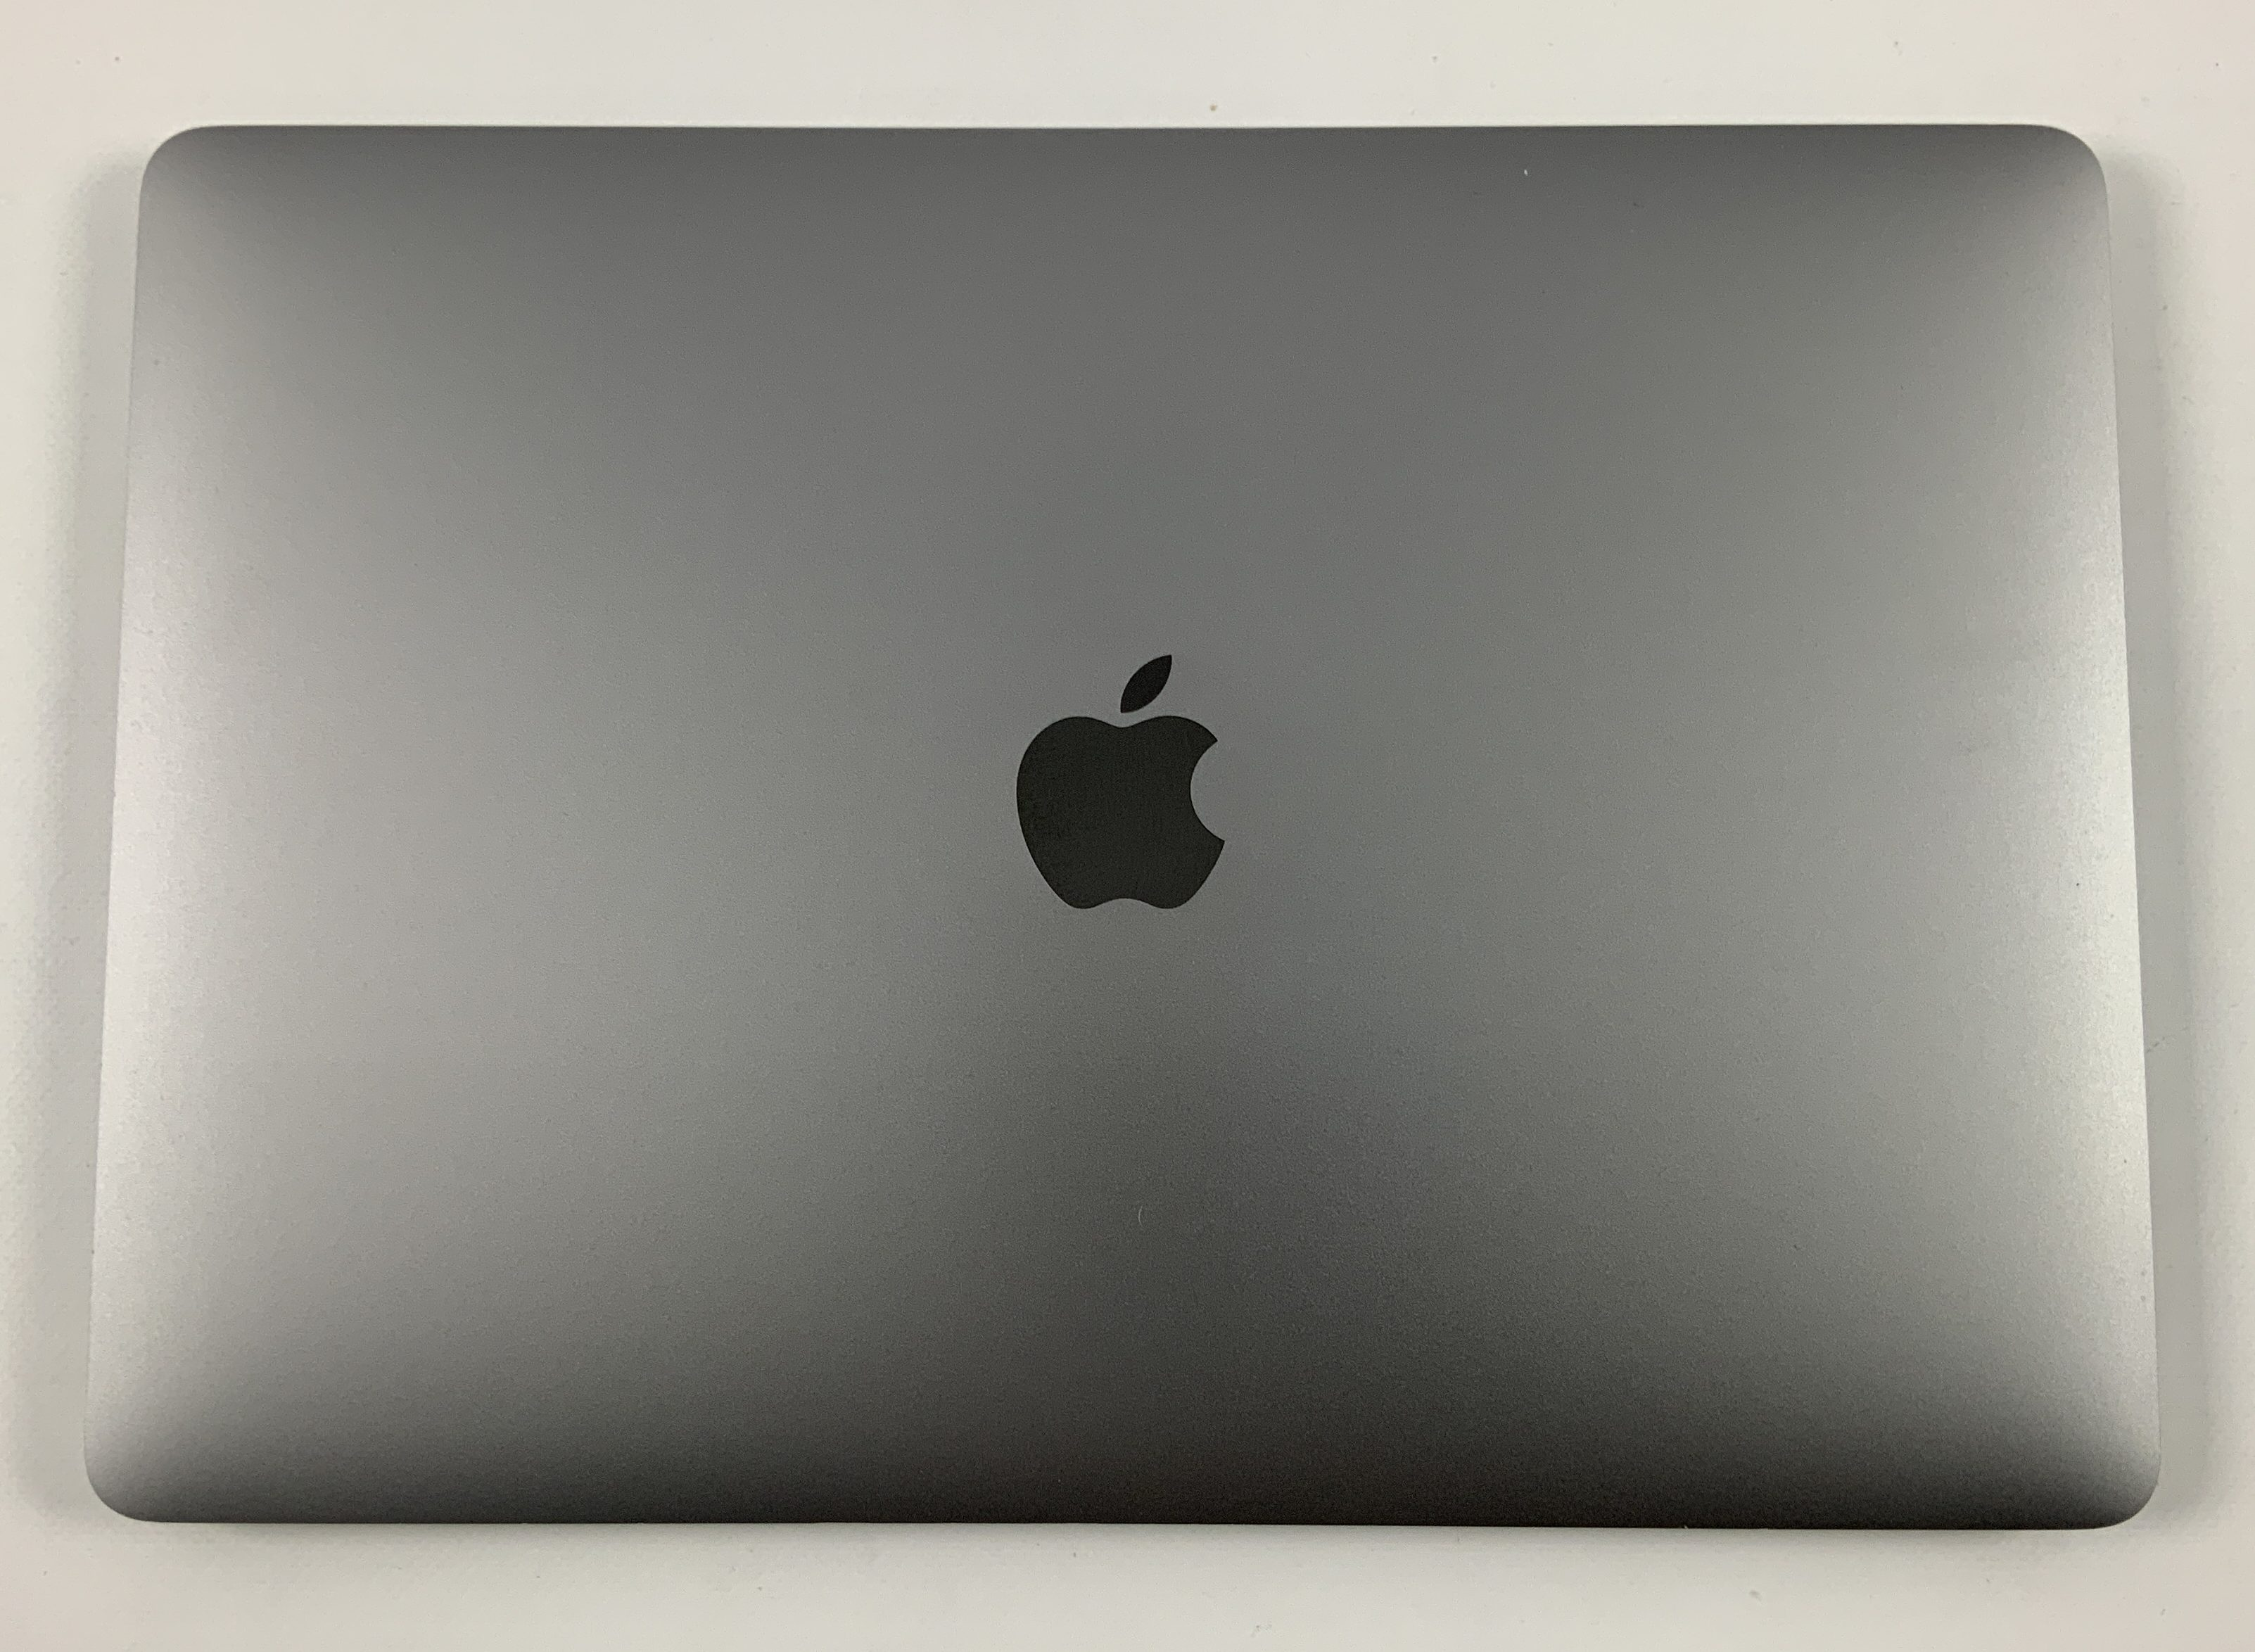 "MacBook Pro 13"" 4TBT Late 2016 (Intel Core i5 2.9 GHz 16 GB RAM 256 GB SSD), Space Gray, Intel Core i5 2.9 GHz, 16 GB RAM, 256 GB SSD, image 2"